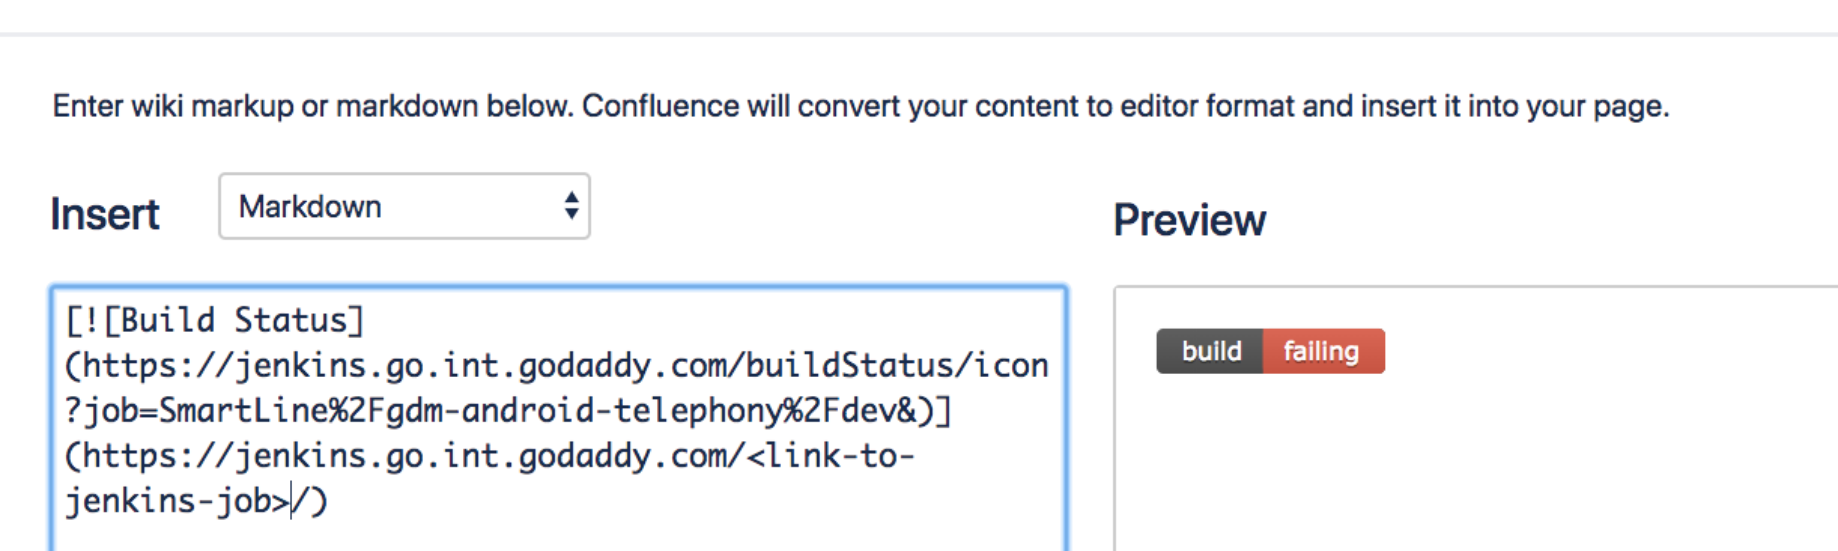 Using jenkins embeddable build plugin to spruce up confluence and github